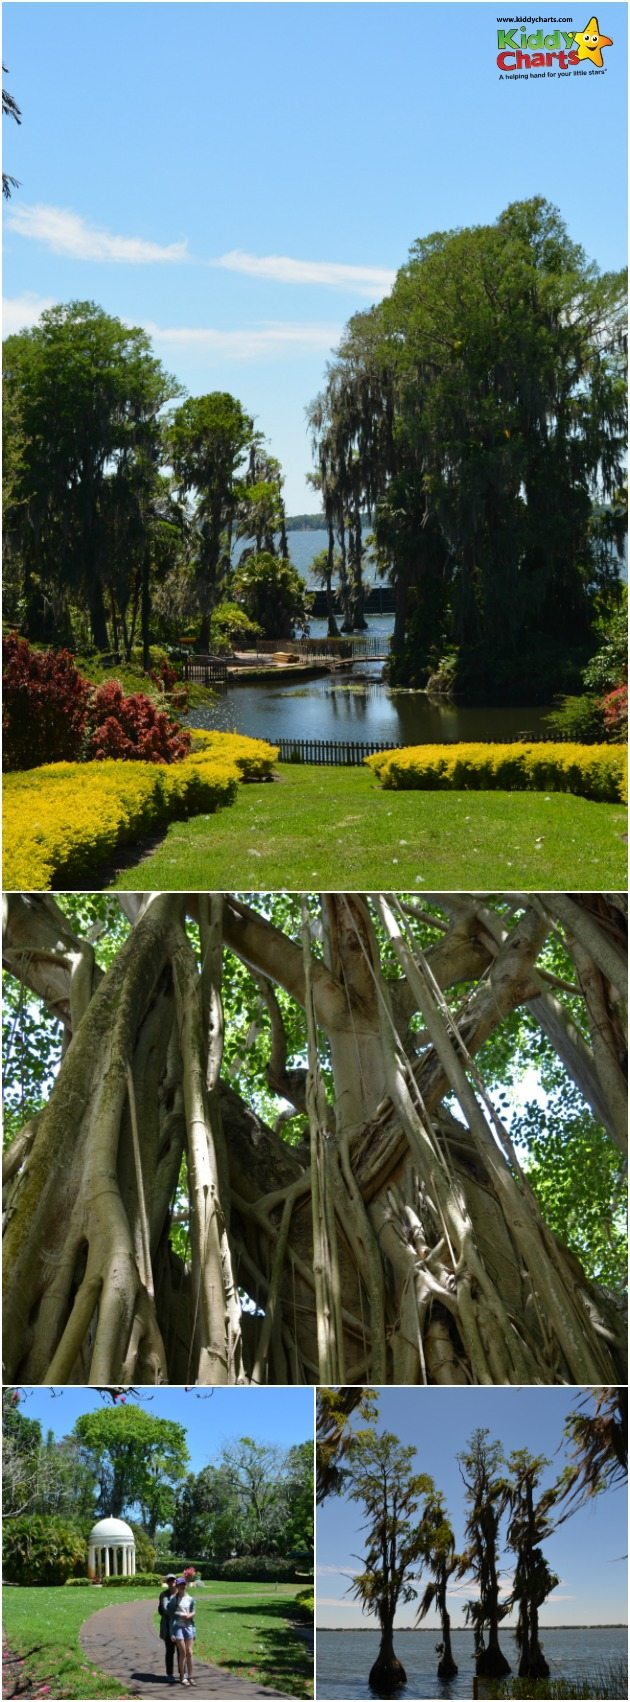 Cypress Gardens in Legoland Florida really is simple stunning - we can't recommend it enough for your trips to this theme park. It really will surprise you.